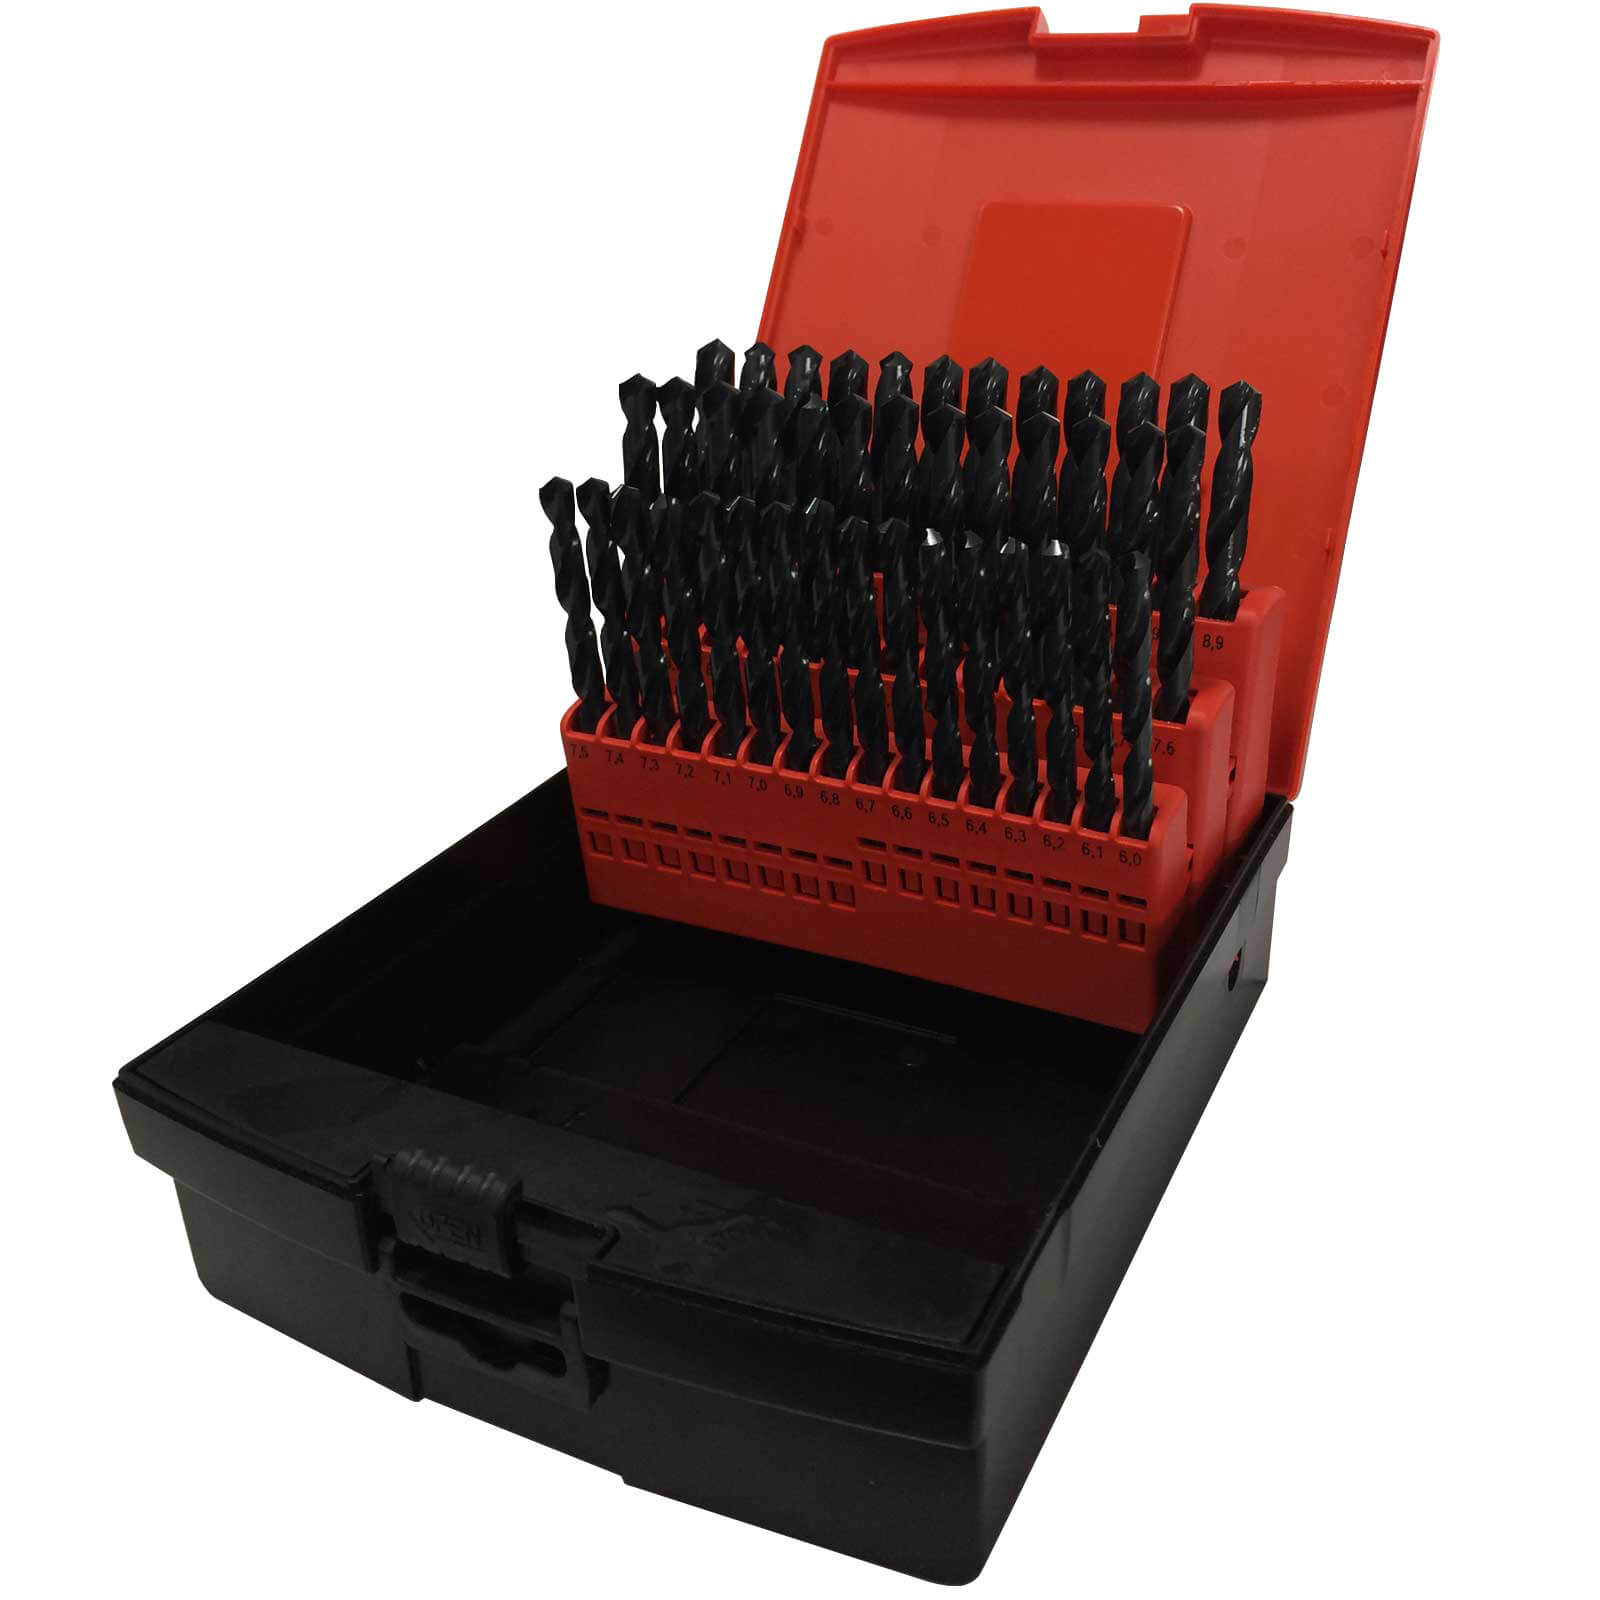 Image of Osborn 41 Piece HSS 6.0 - 10mm By 0.1mm Drill Set